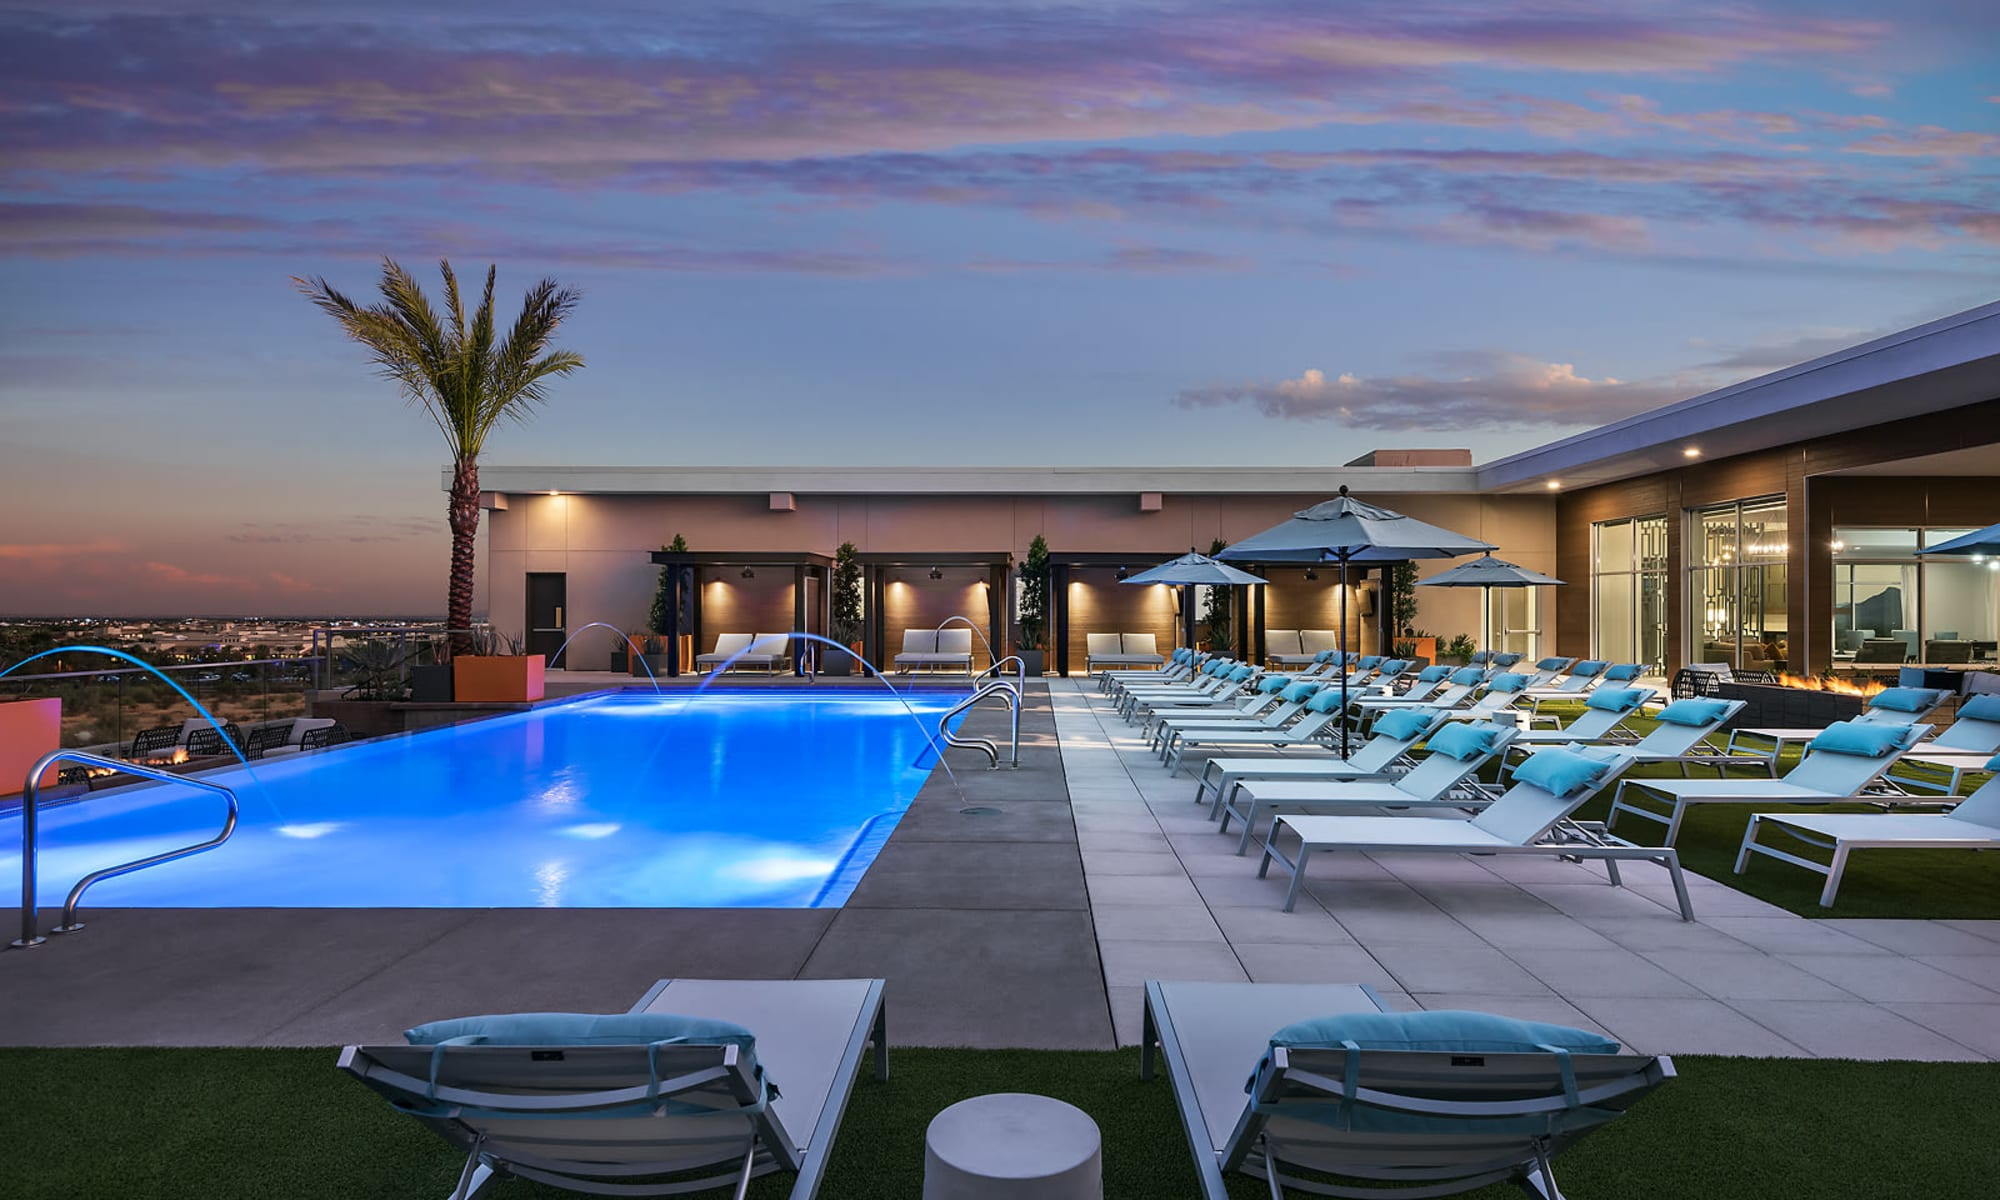 Resort style pool at The Halsten at Chauncey Lane in Scottsdale, Arizona